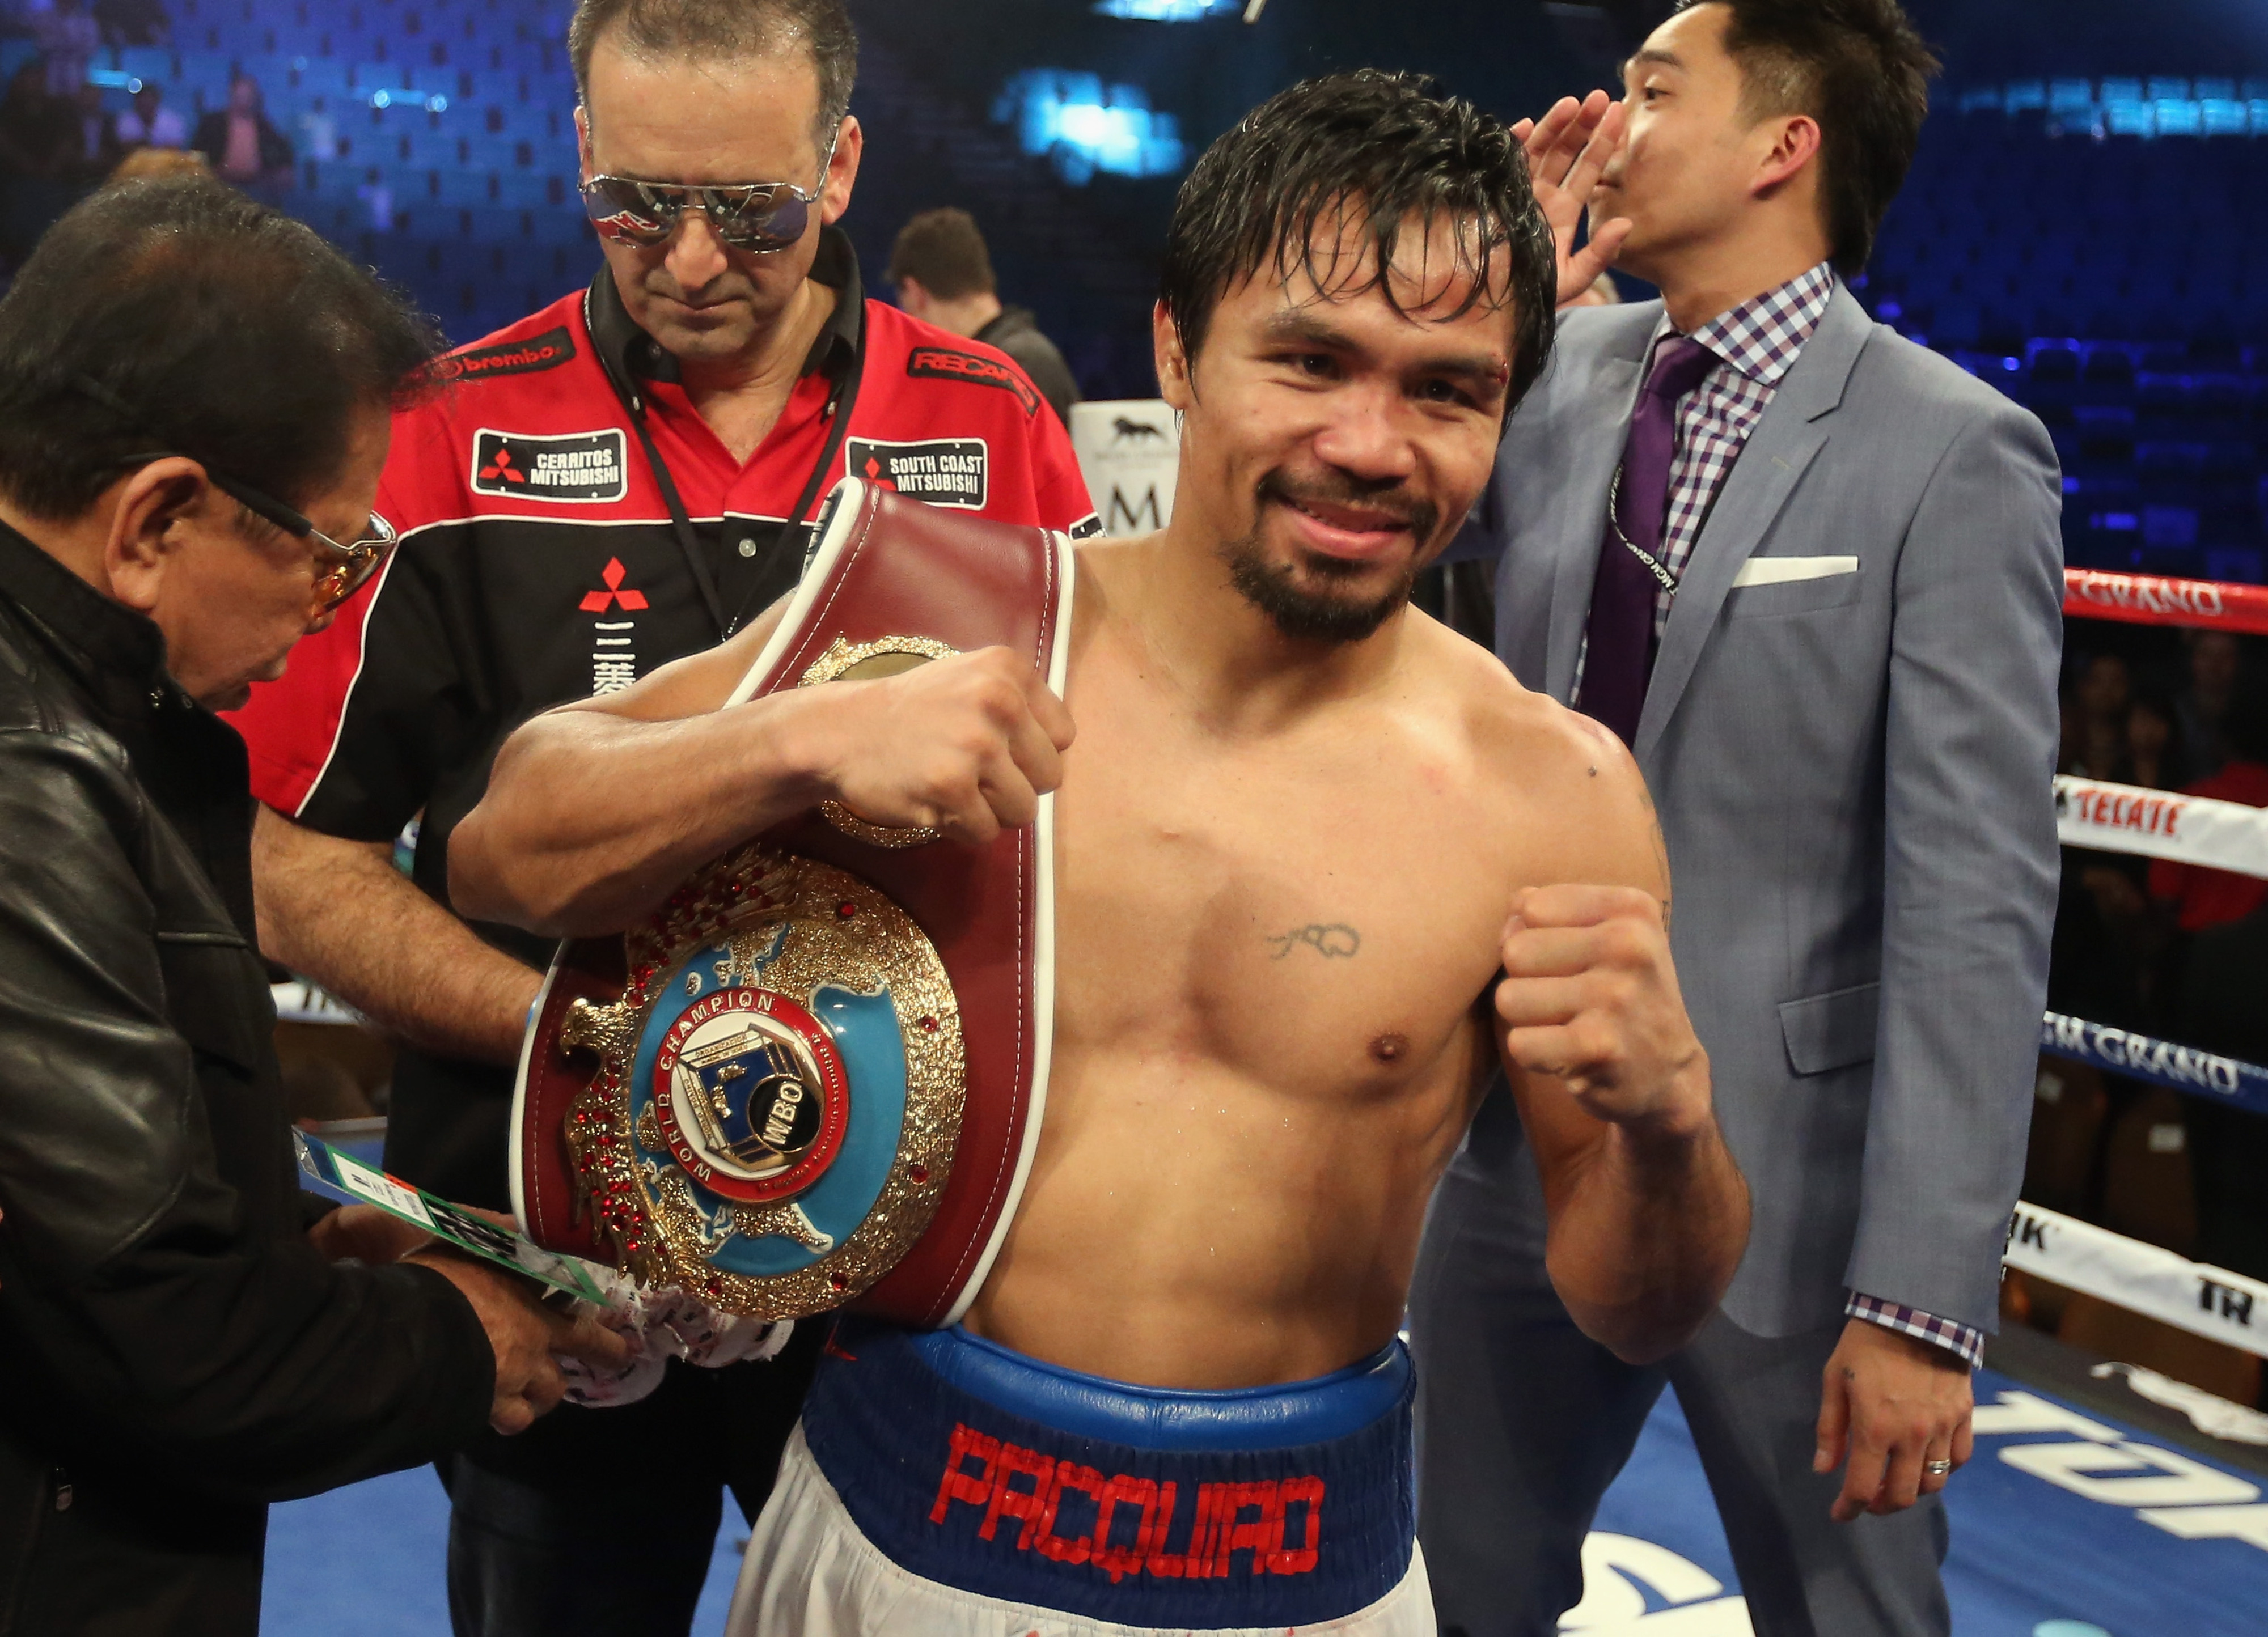 Manny Pacquiao defeats Timothy Bradley to win WBO welterweight title